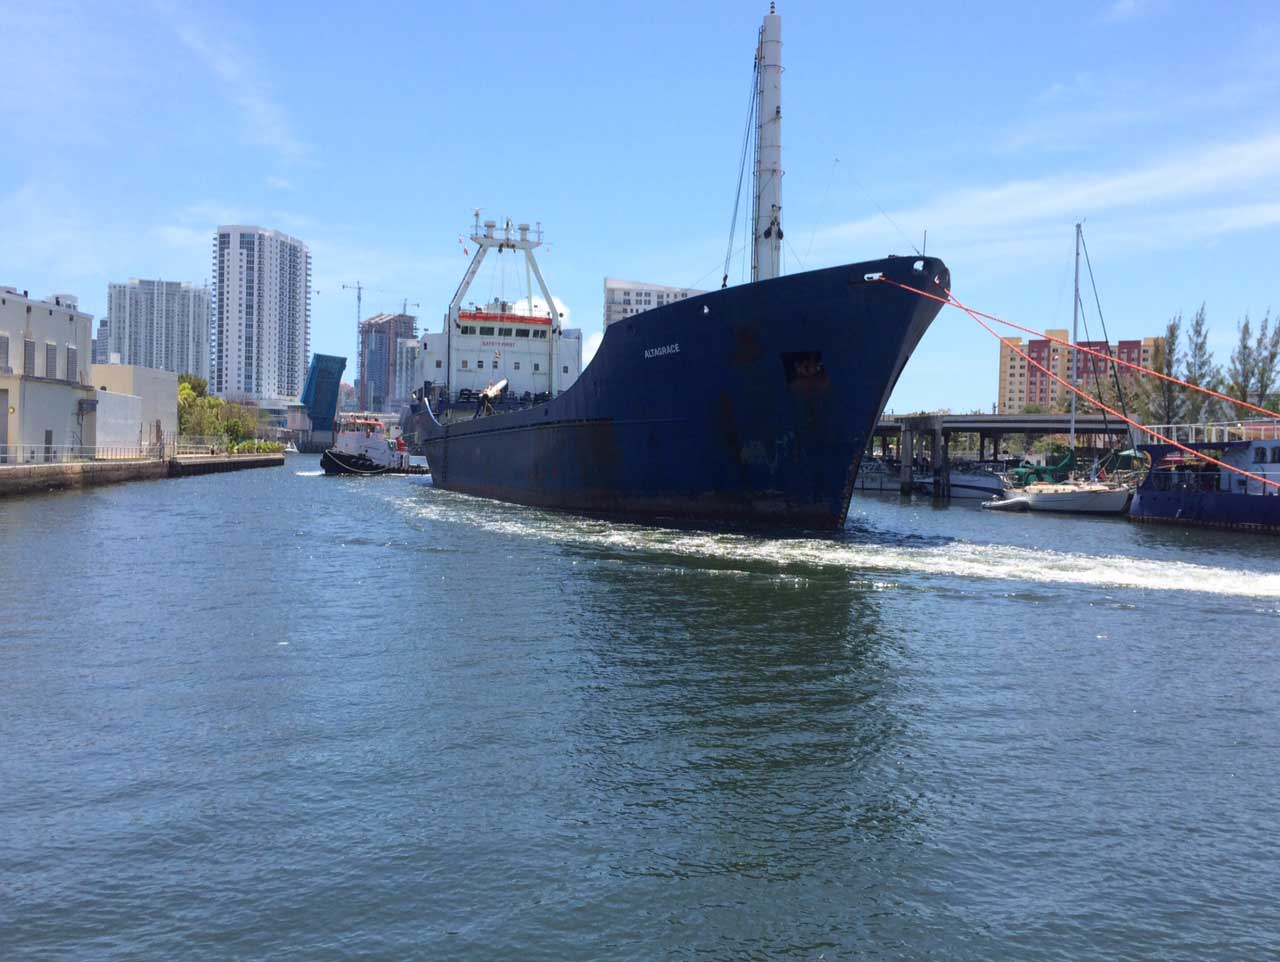 State seeks ways to build Miami River freight capacity